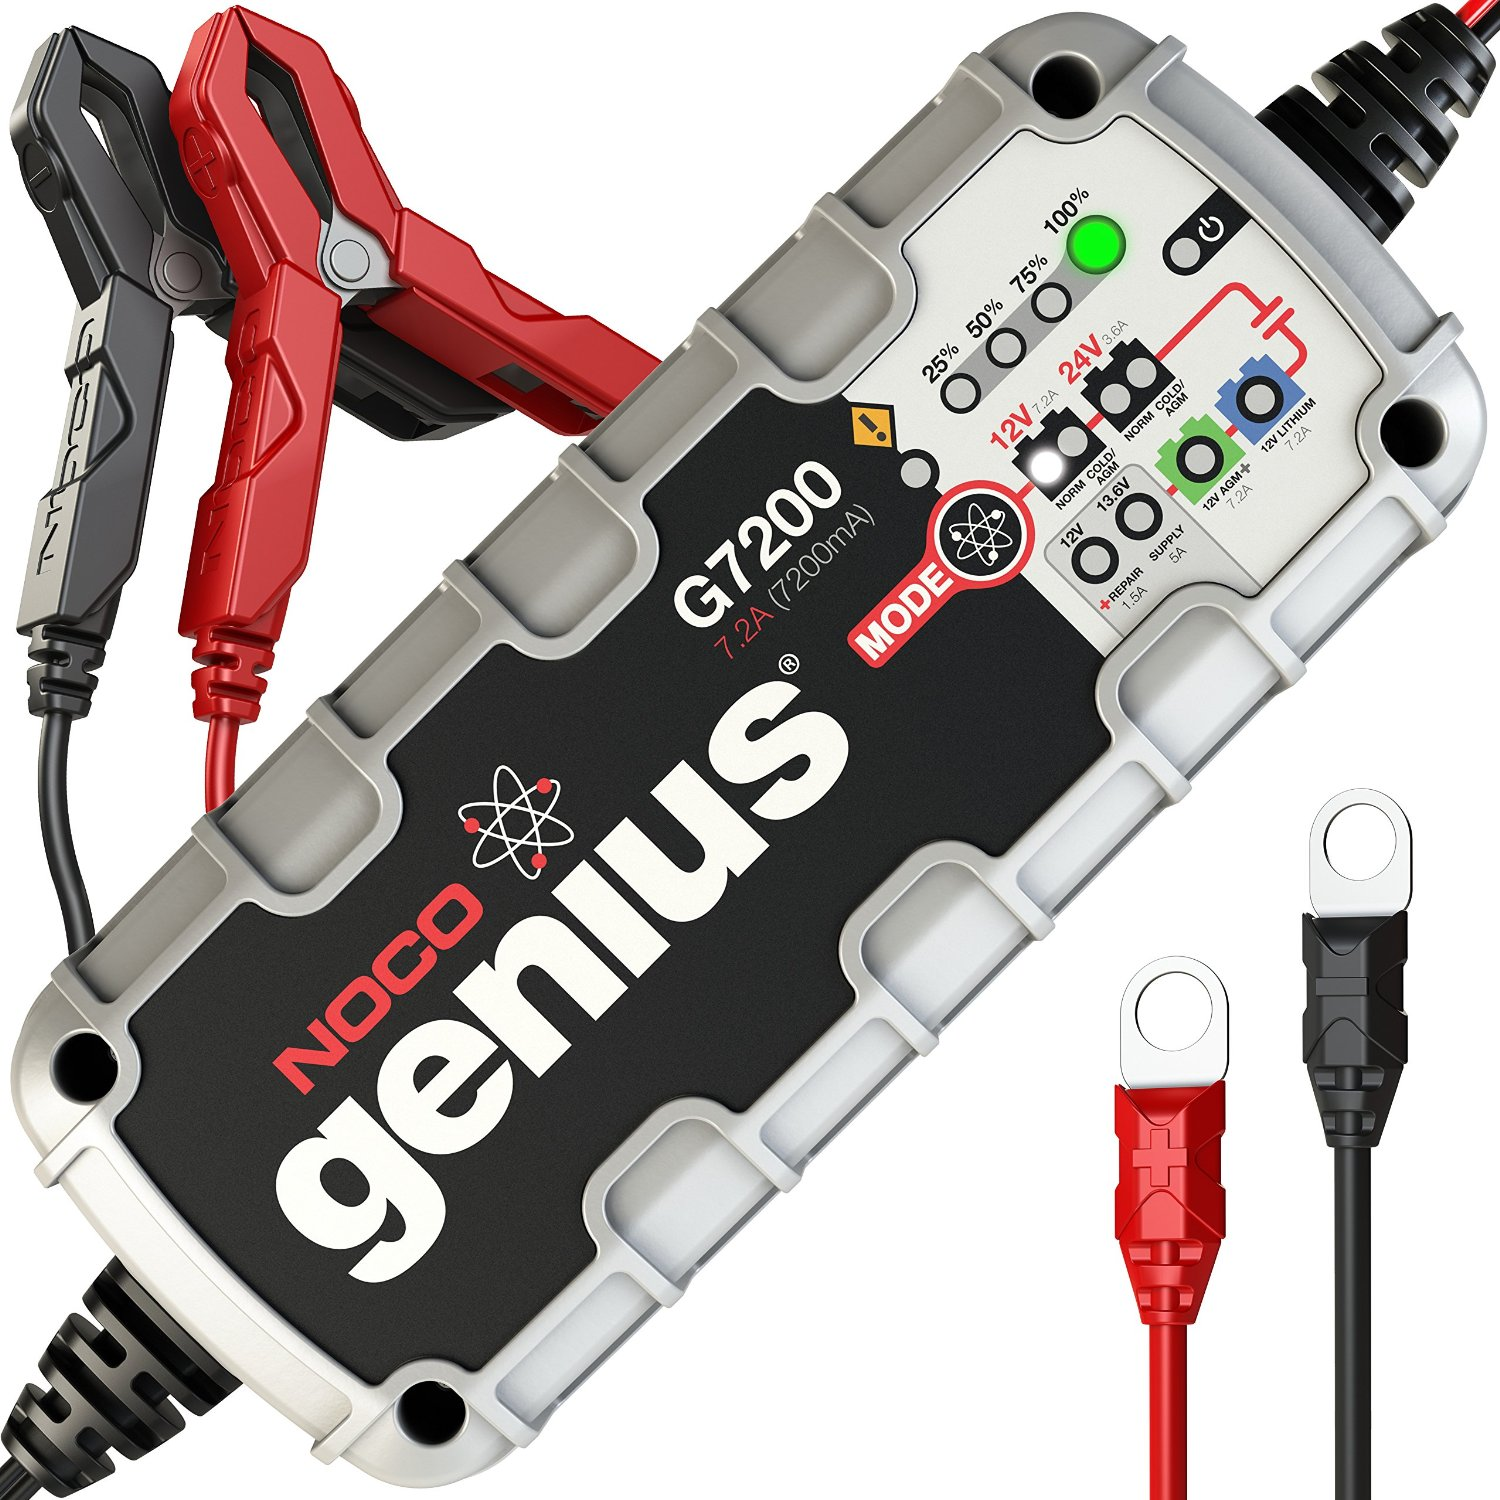 *NLA* NOCO 7200mAH GENIUS BATTERY CHARGER